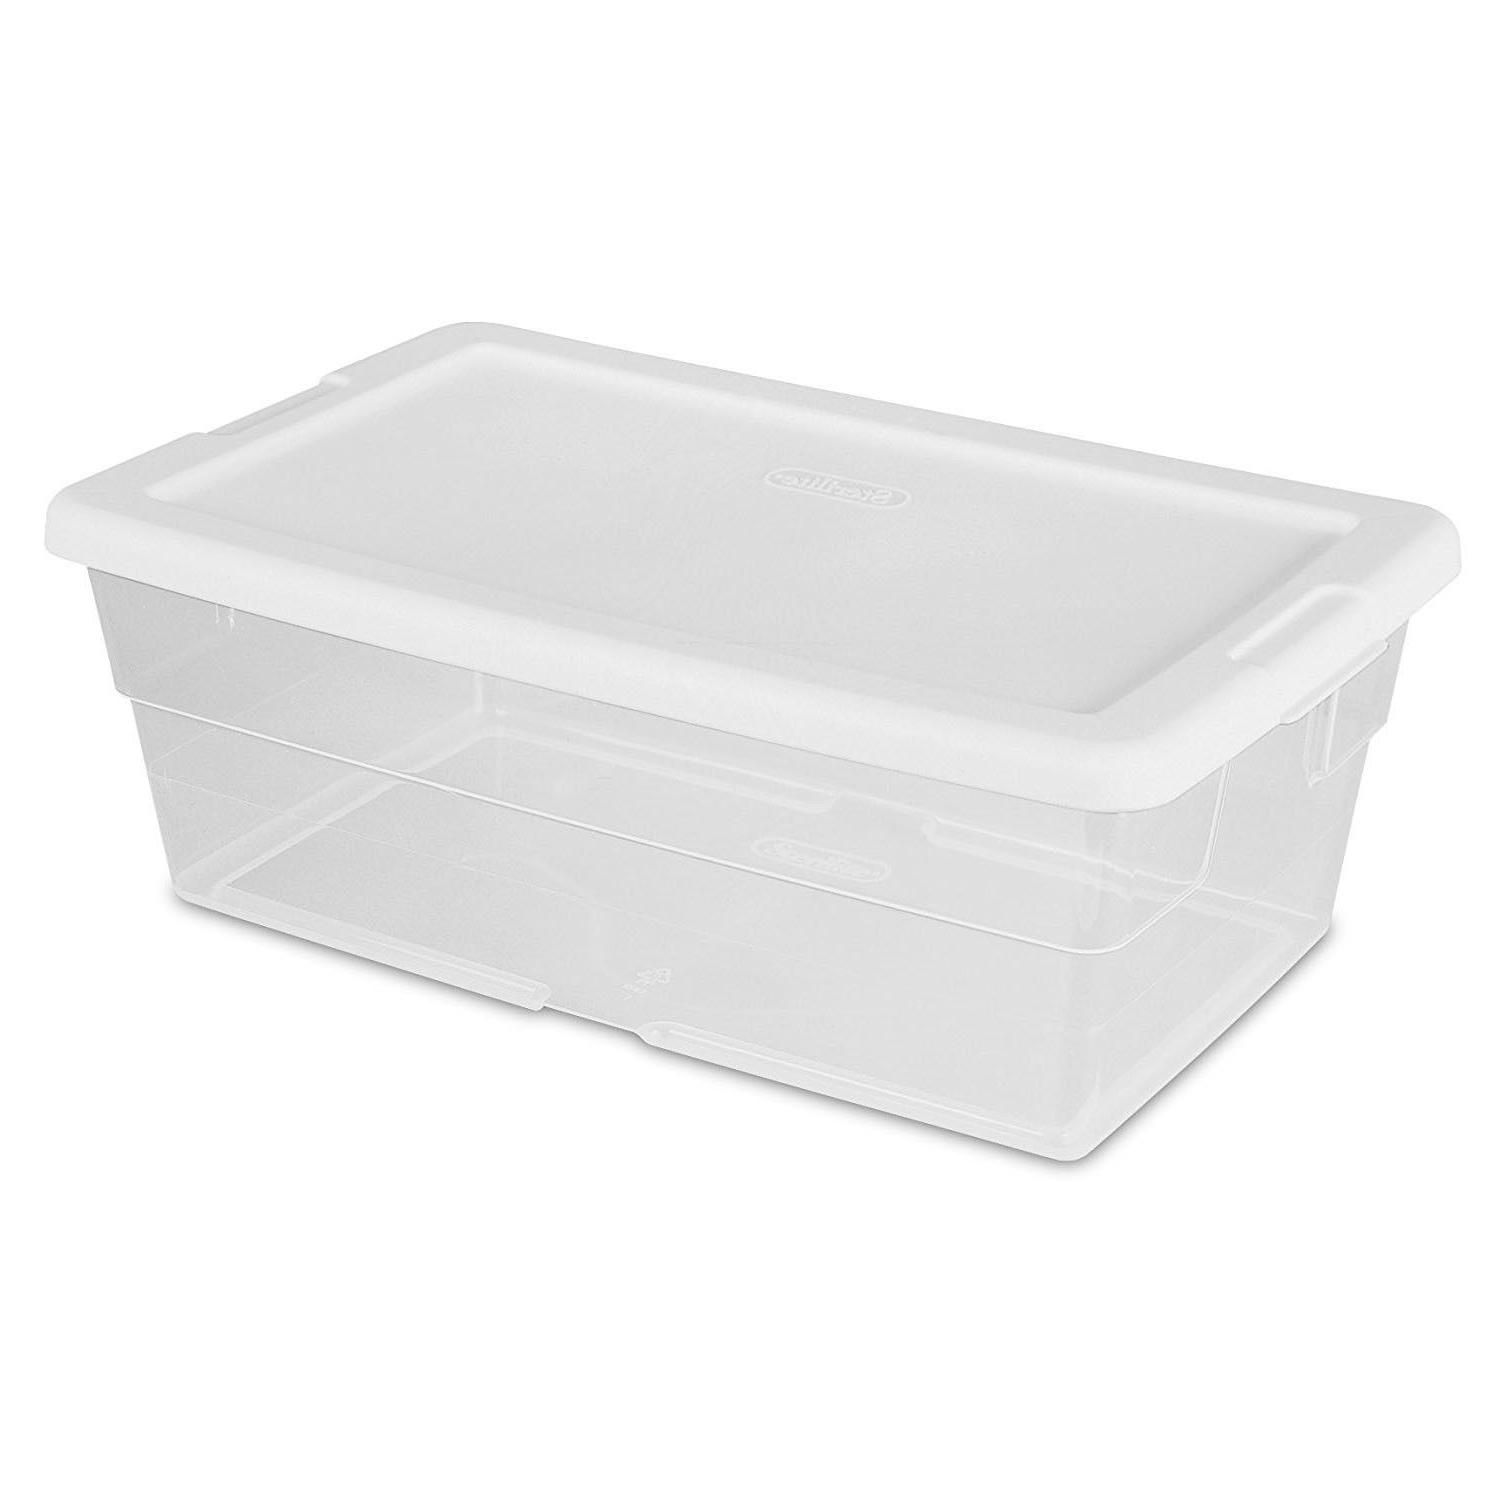 Clear Storage w/Lid Bin Shoe Supplies Organizer Box